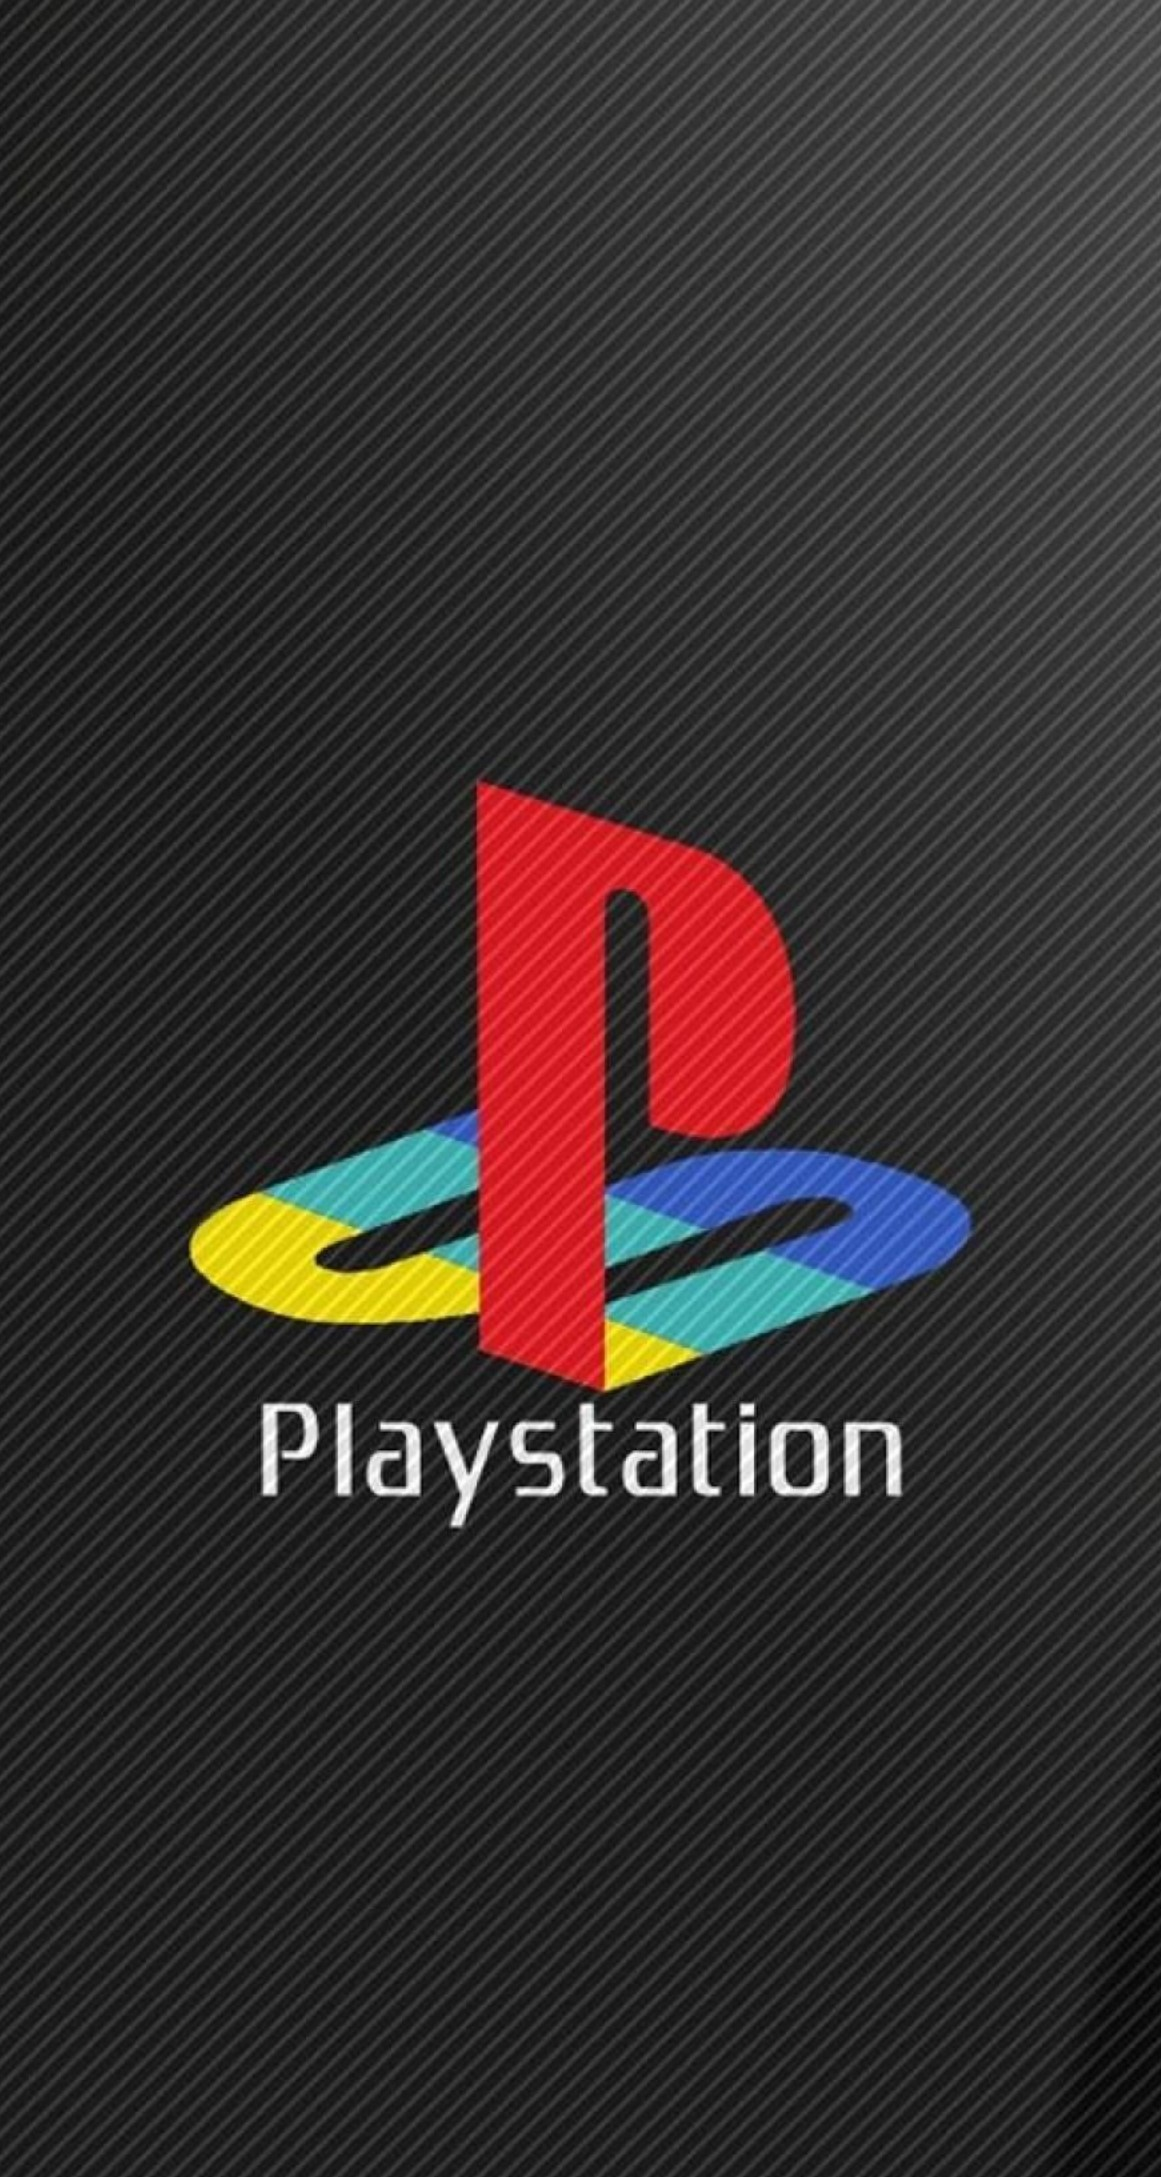 1161x2177 Playstation, Iphone Wallpapers, Videogames, Stupid People, Beautiful, Sony,  Gaming, Branding, Wallpapers